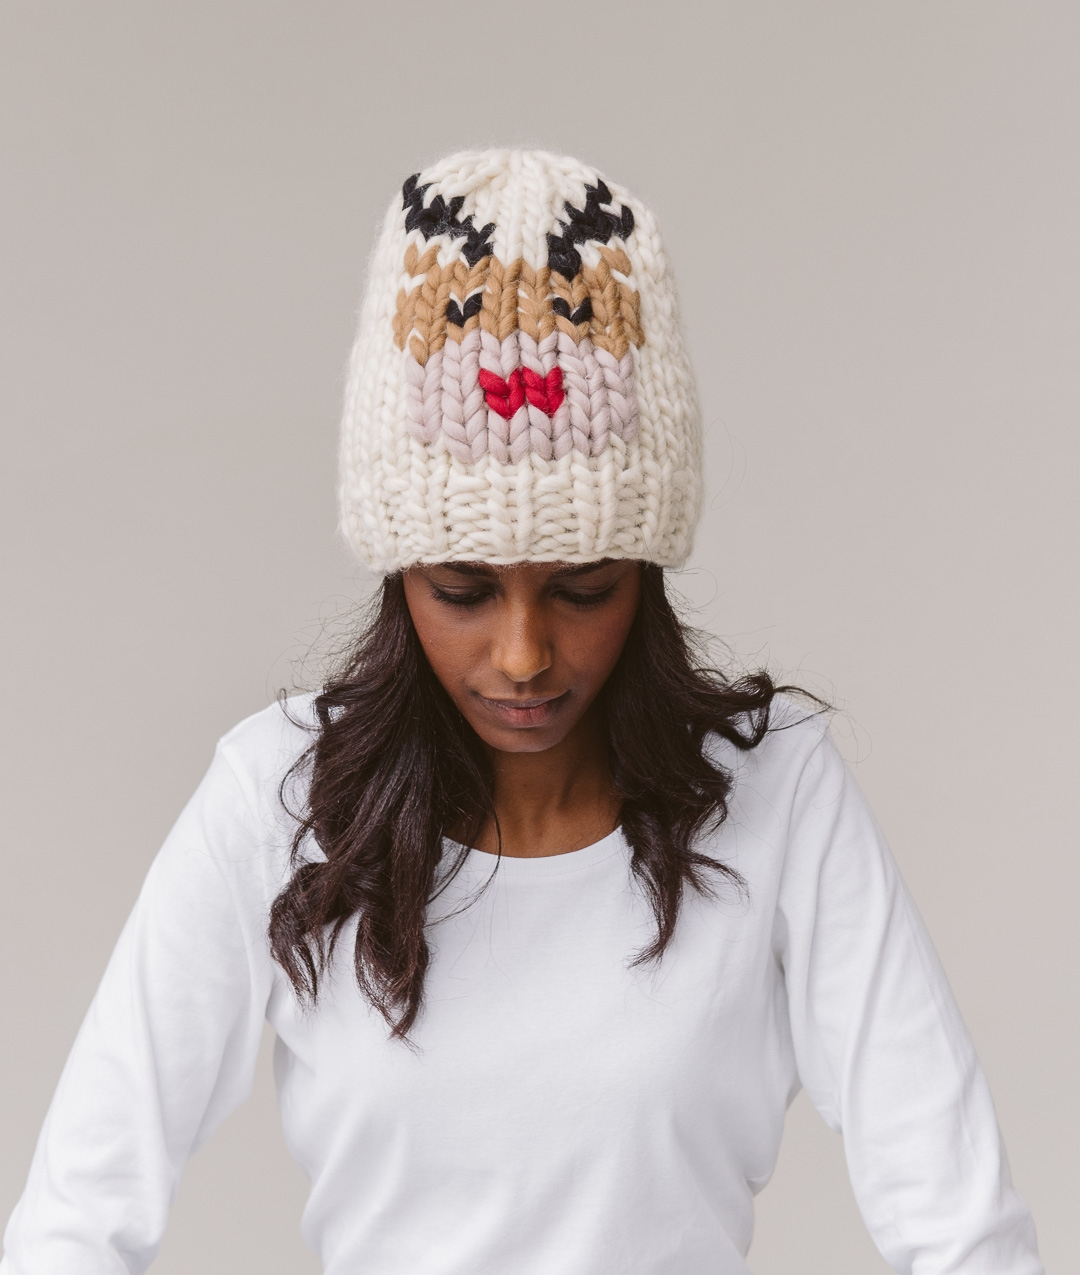 Hats and Beanies - 2 HOURS KITS - XMAS BEANIE - Reindeer - 1